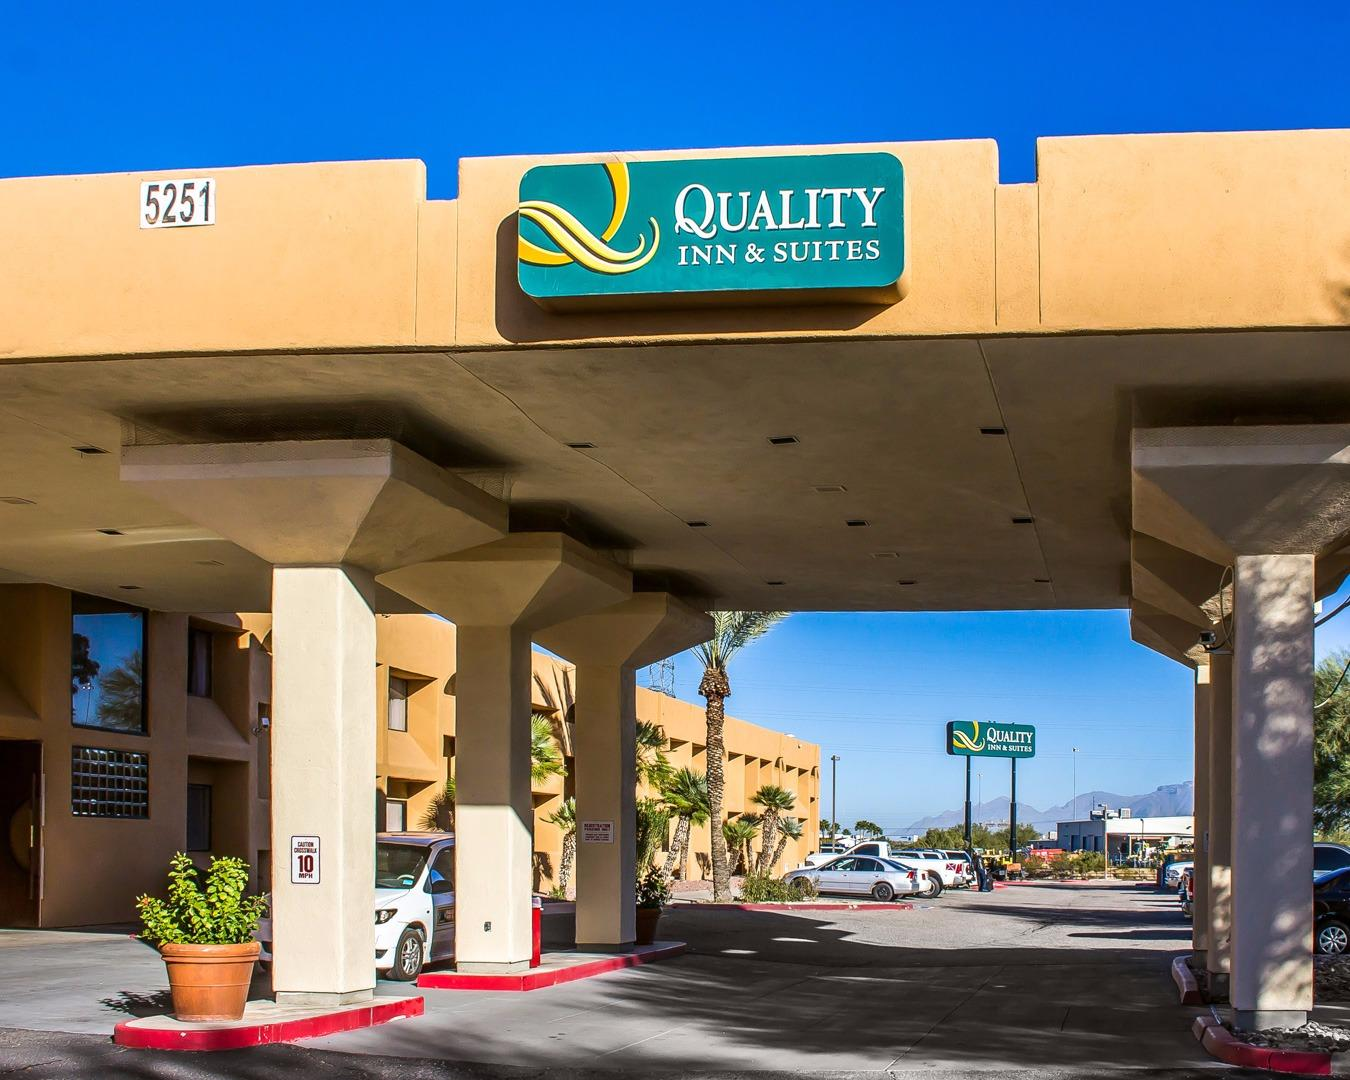 The Quality Inn and Suites Airport North hotel in sunny Tucson, Arizona is situated less than three miles and just five minutes away from the Tucson International Airport.